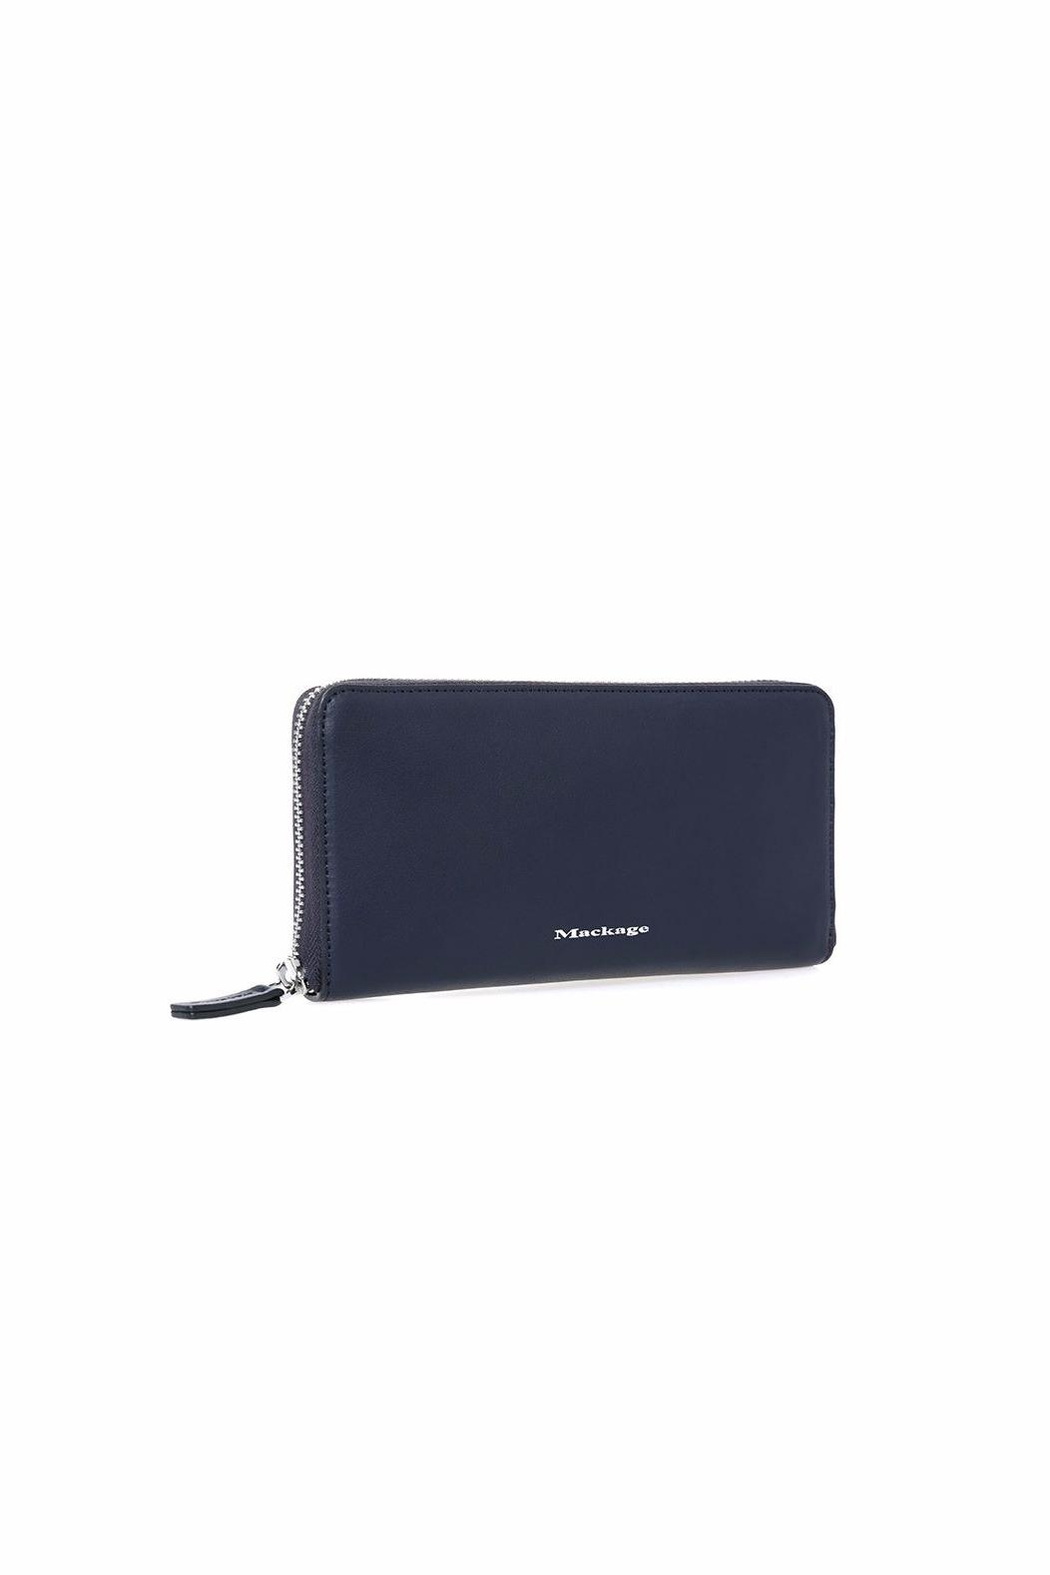 Mackage Duke Leather Wallet - Front Full Image